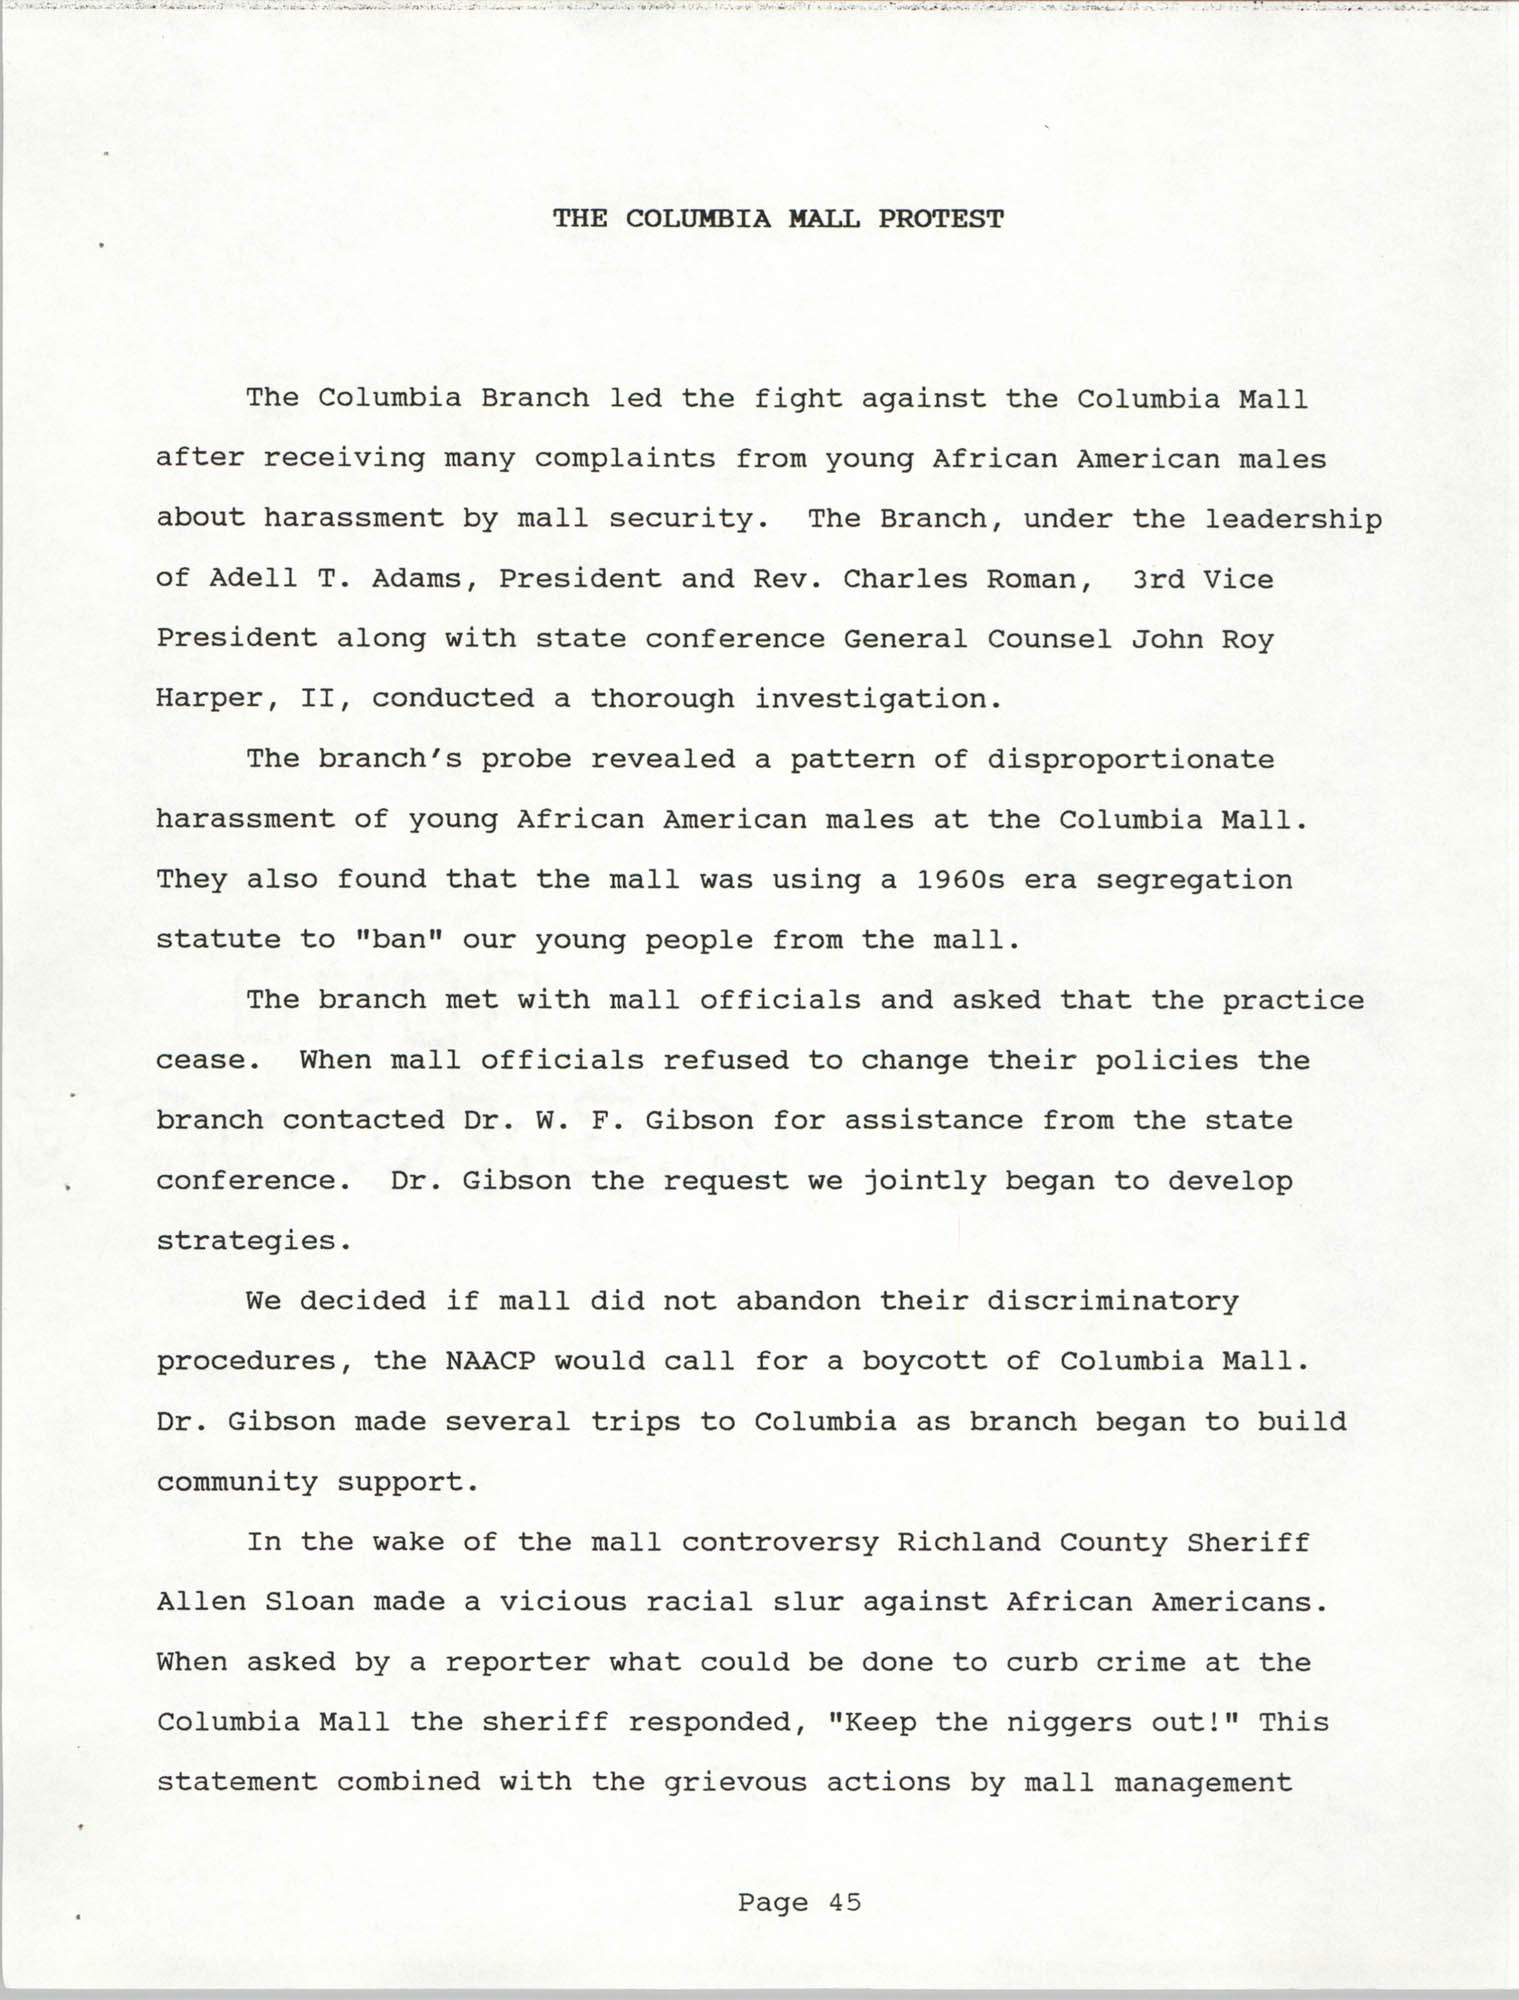 South Carolina Conference of Branches of the NAACP, 1990 Annual Report, Part Two, Page 45